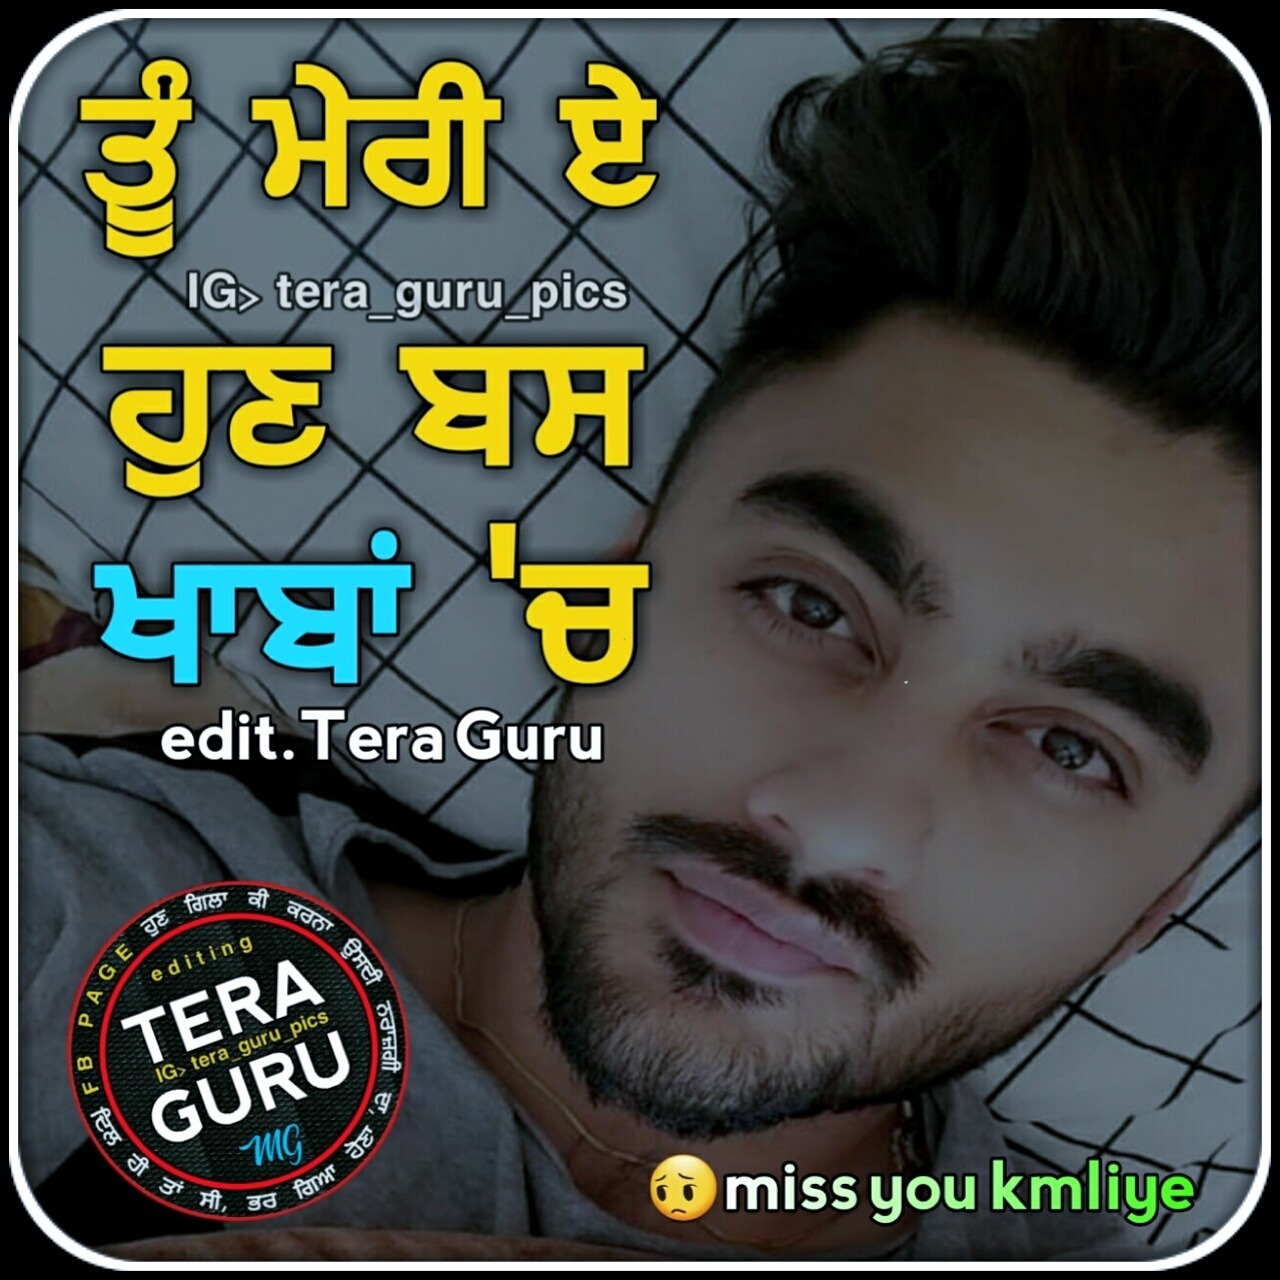 Punjabi Love Pictures, Images, Graphics - Page 3